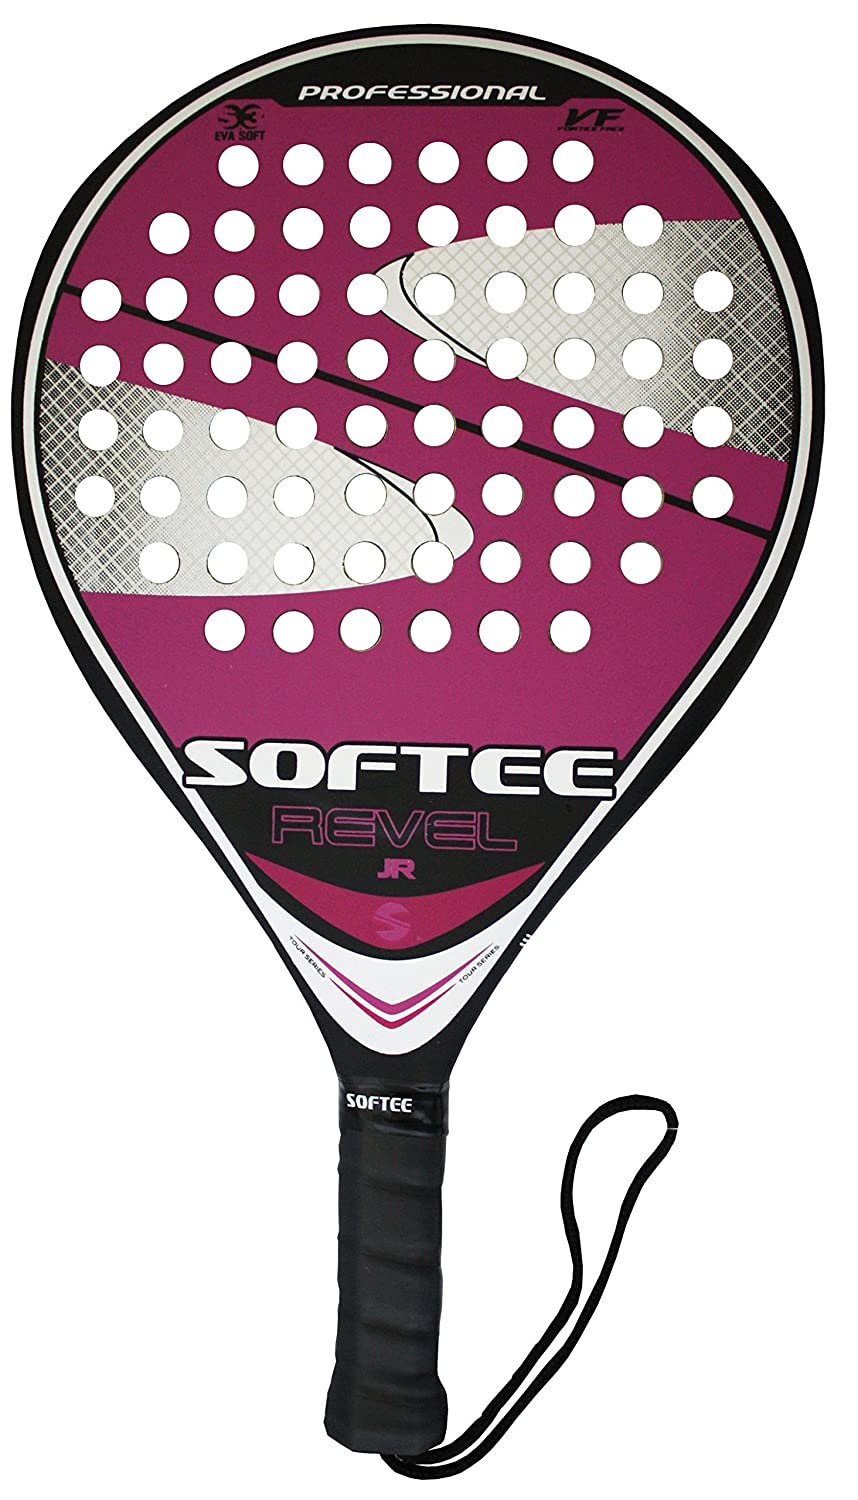 Softee - Pala Padel Revel Junior: Amazon.es: Deportes y aire libre